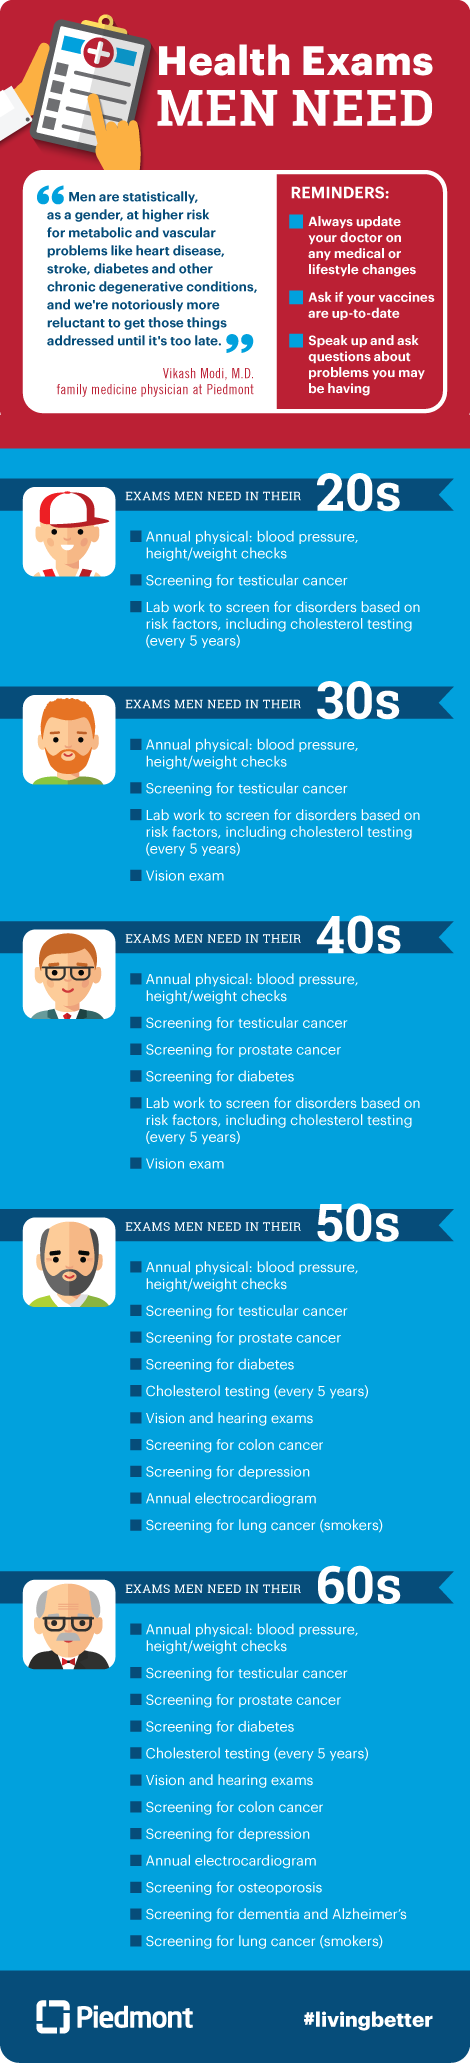 Graphic on health exams that men need.